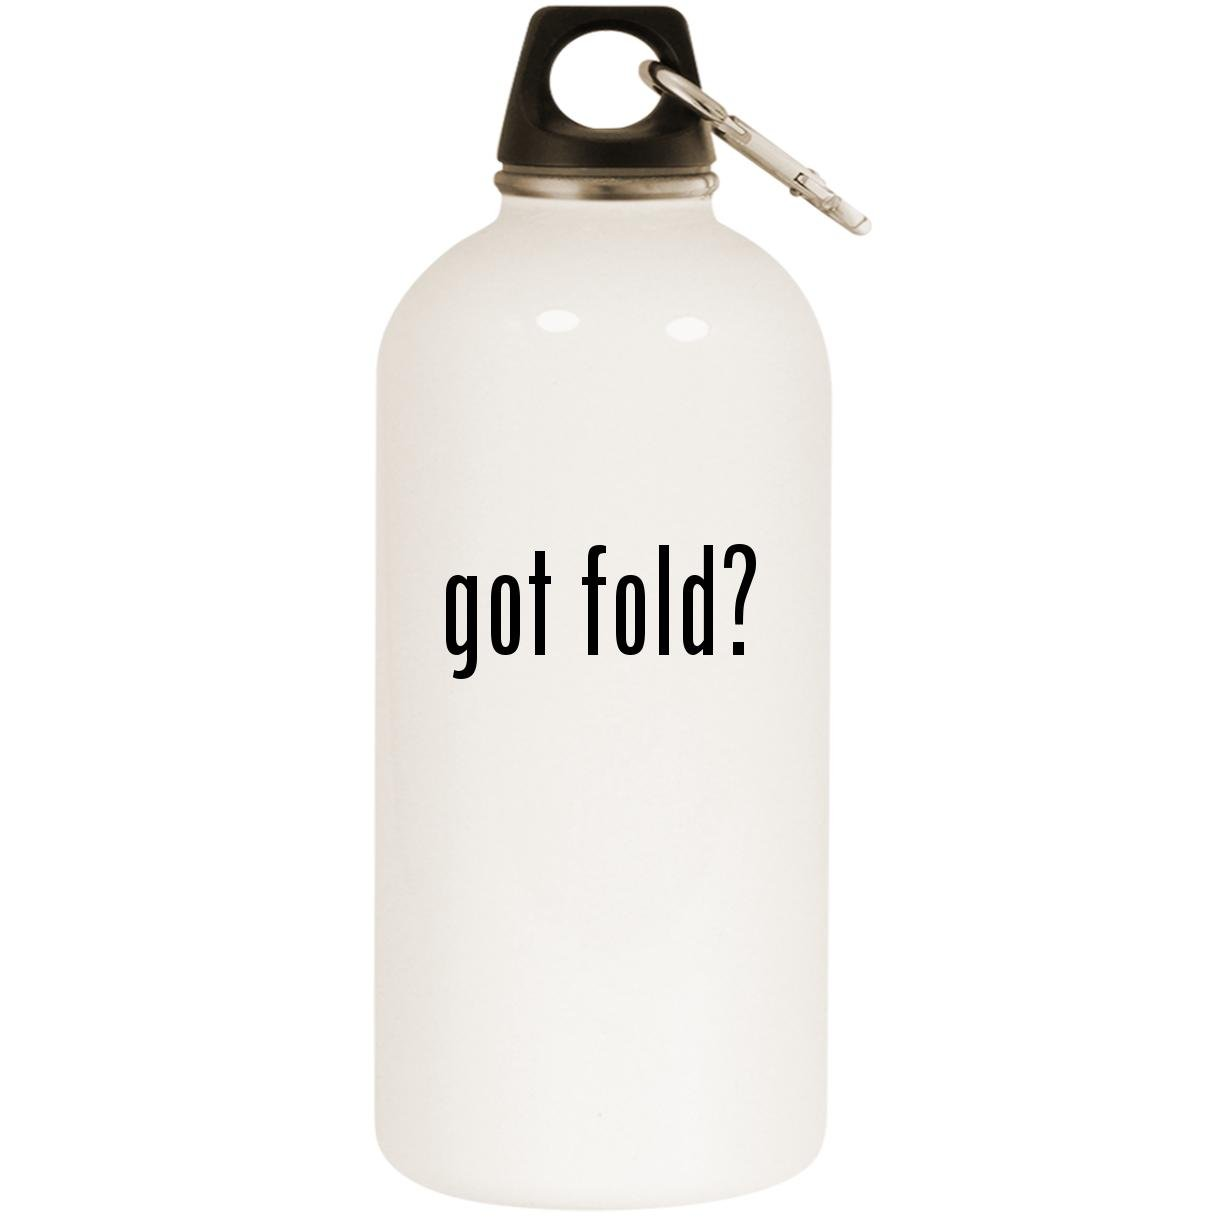 Molandra Products got fold? - White 20oz Stainless Steel Water Bottle with Carabiner